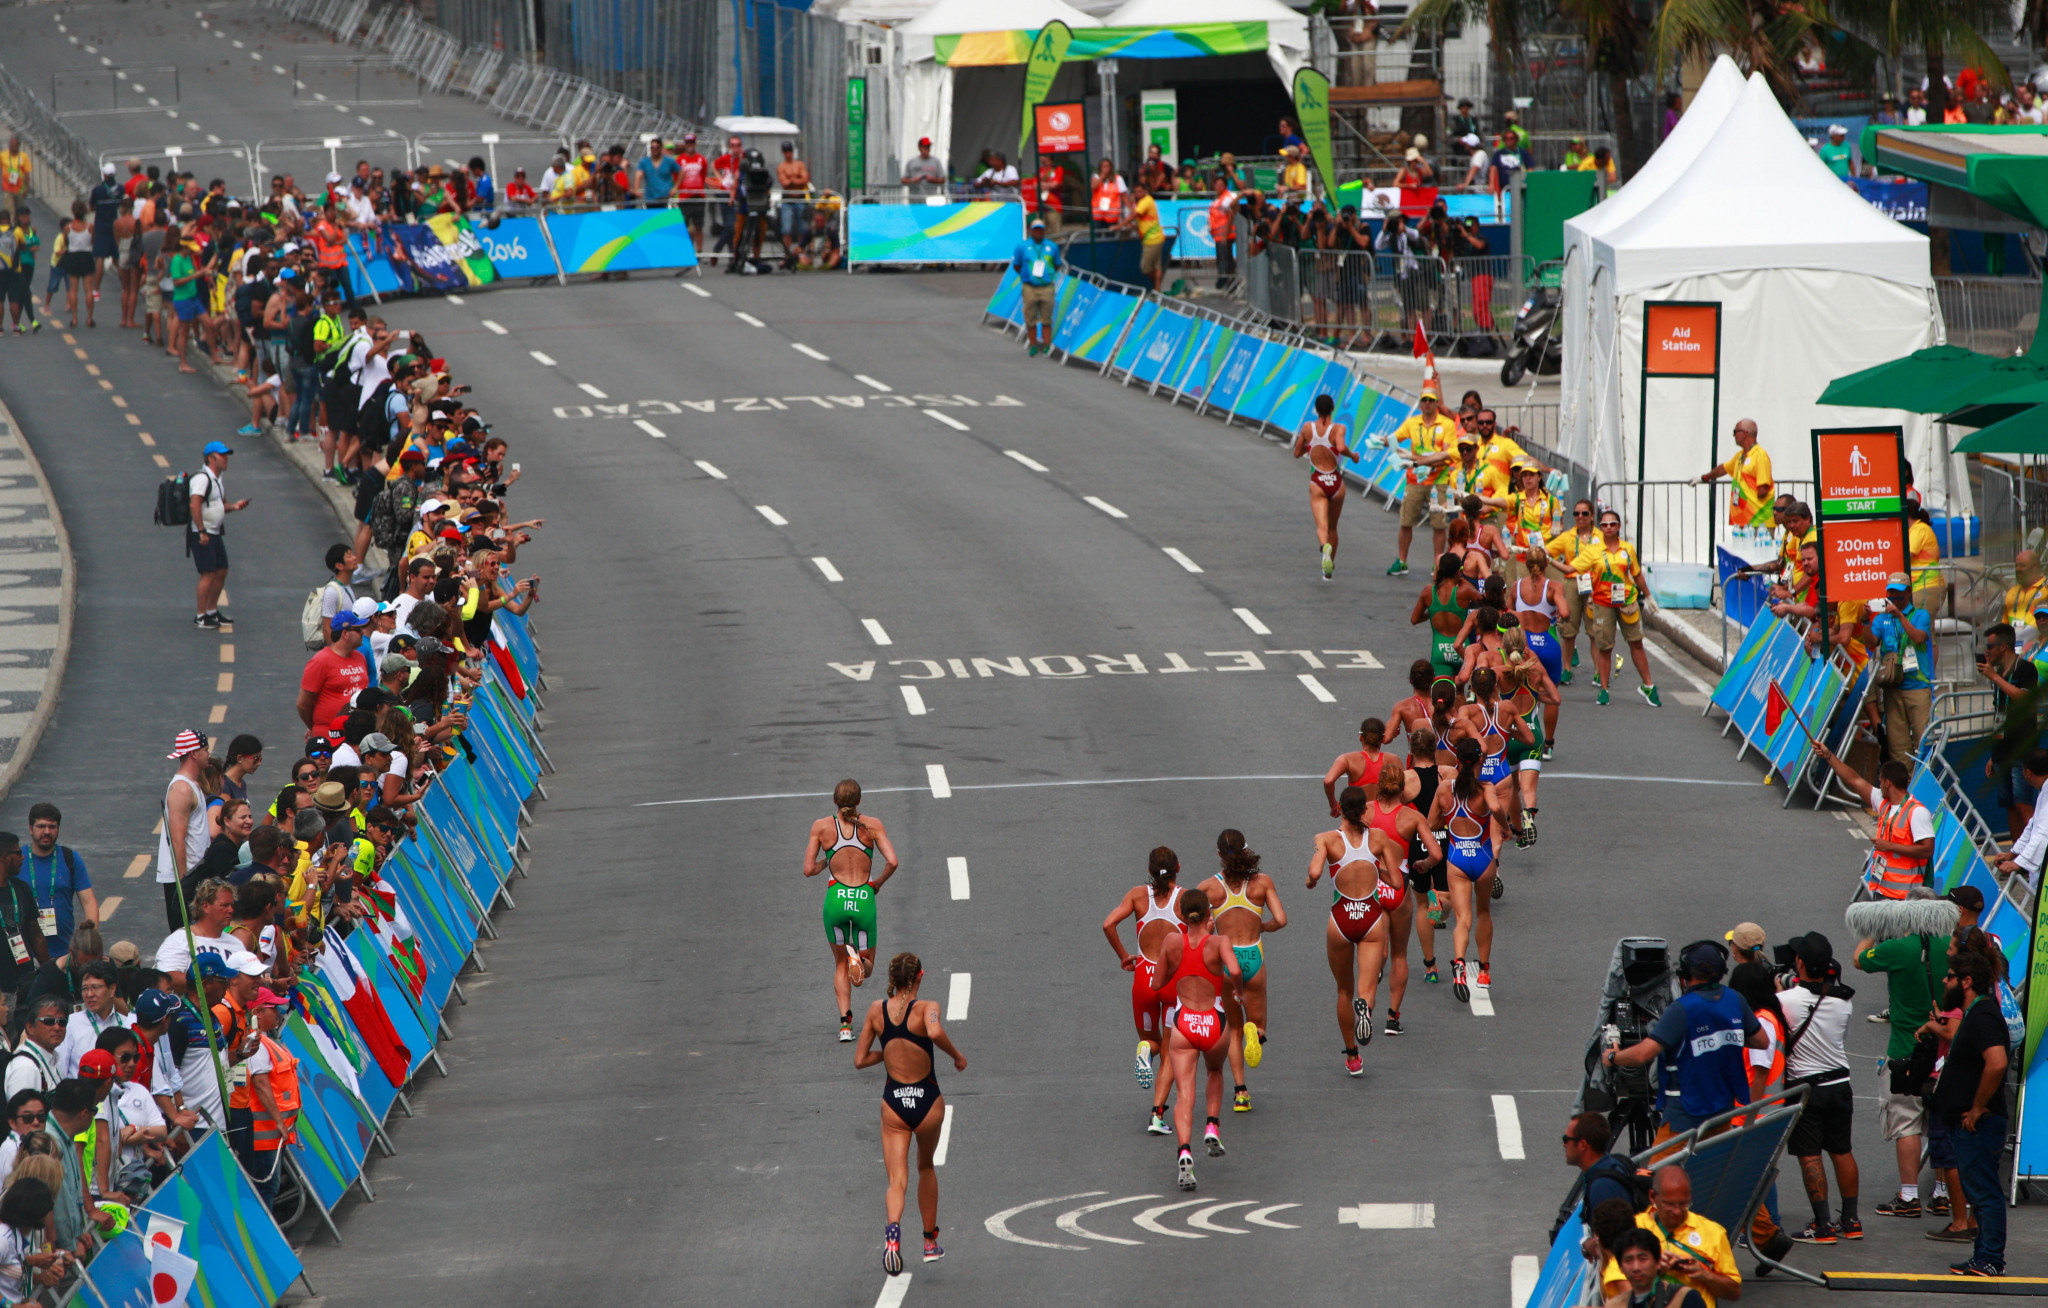 The emergency fund will help athletes prepare for qualifying events for Tokyo 2020, it is hoped ©Getty Images